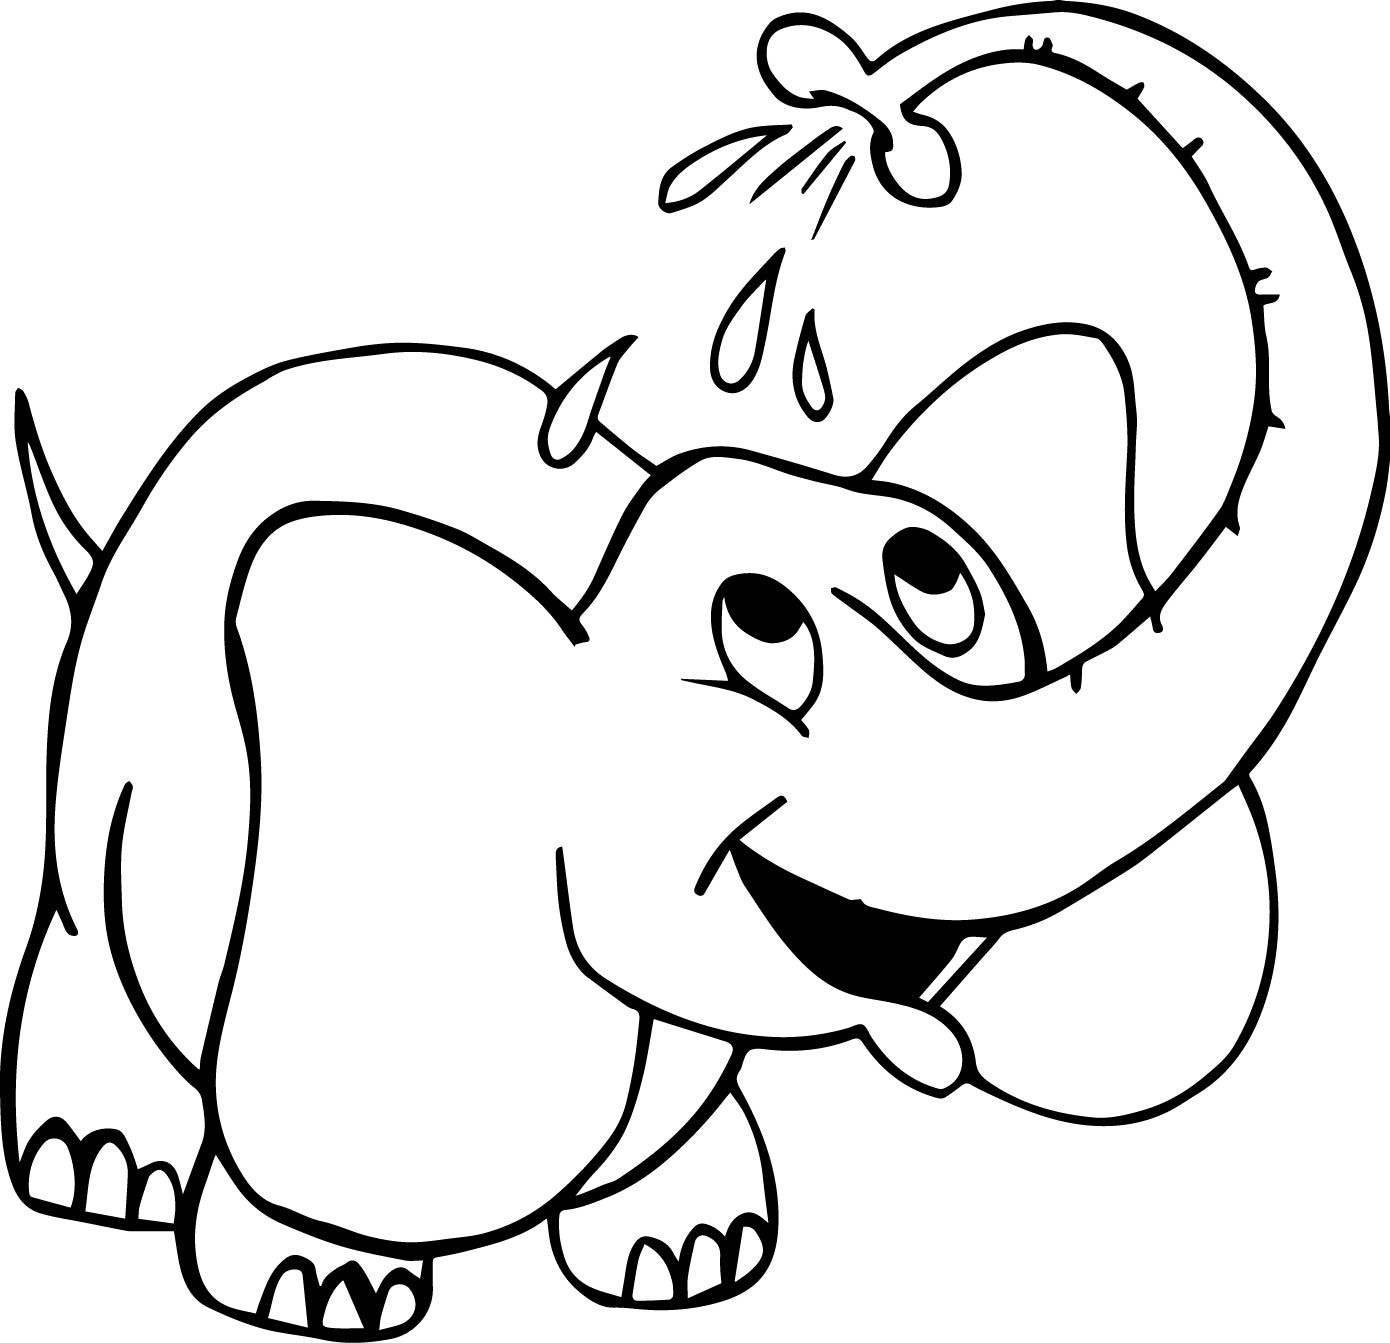 Washing Elephant Coloring Page Elephant Coloring Page Animal